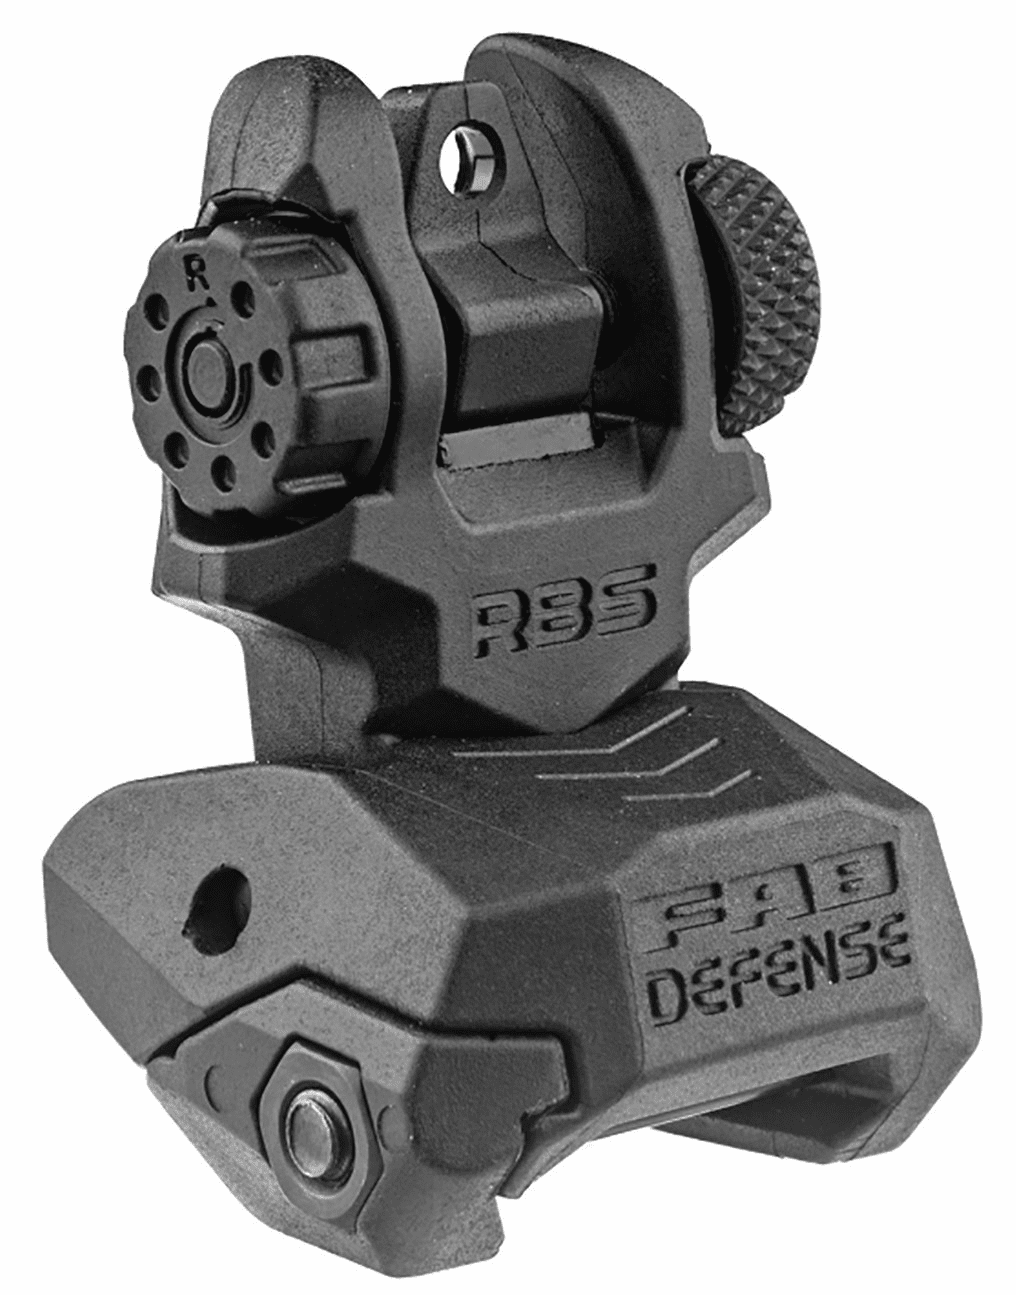 FAB Defense Poly Rear Flip Up Sight - FX-RBS